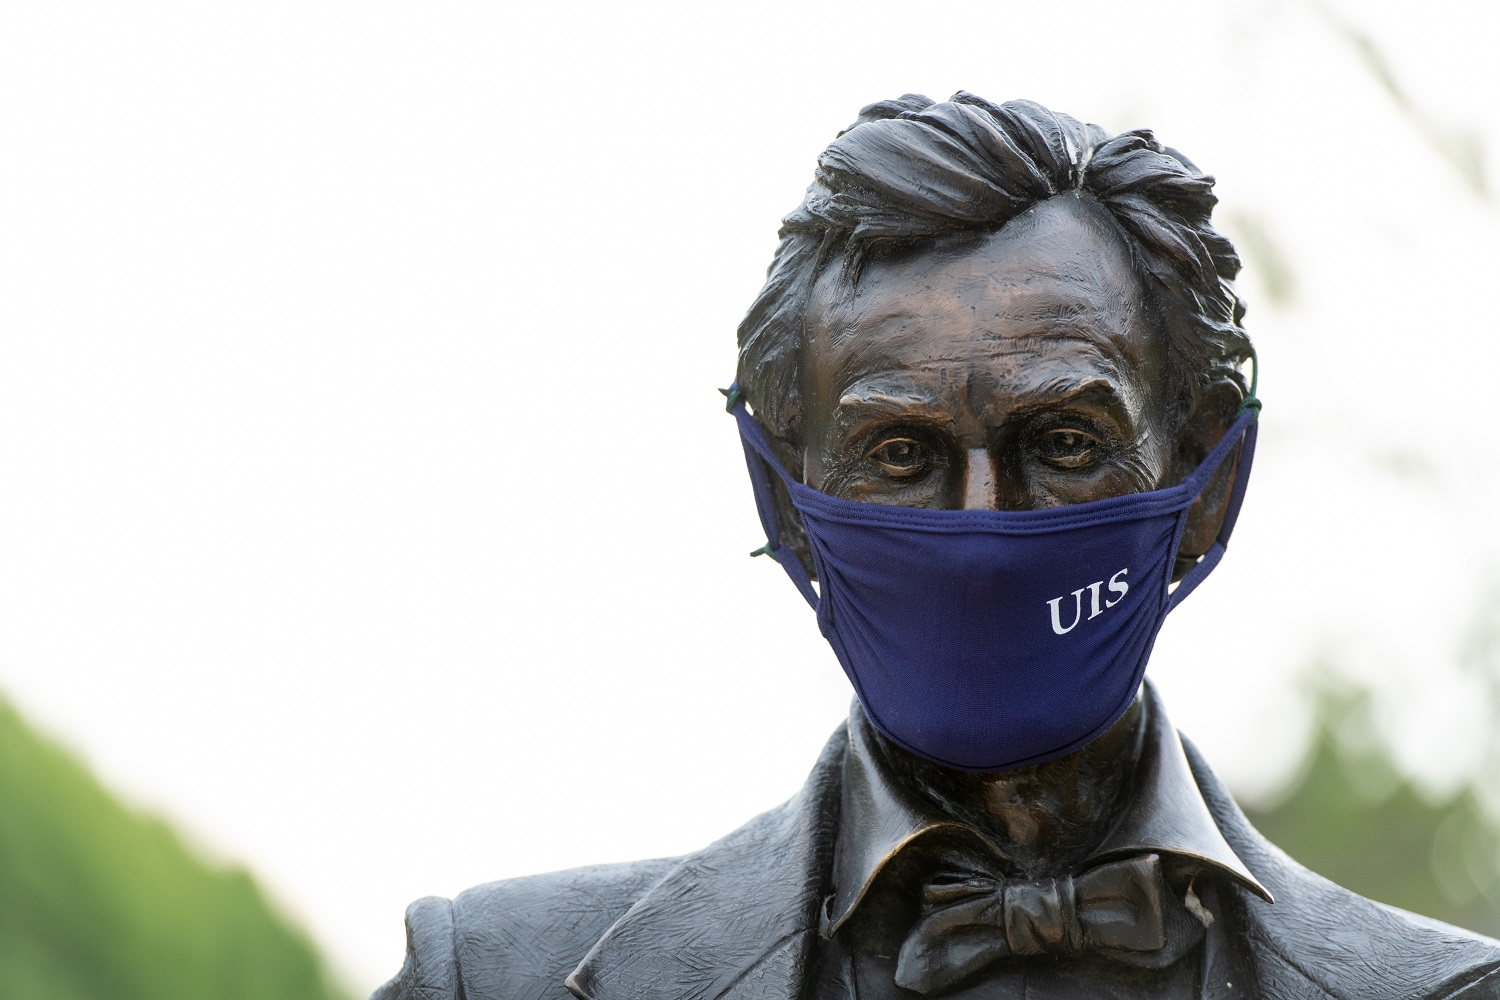 Photo of the UIS Young Lincoln statue wearing a mask